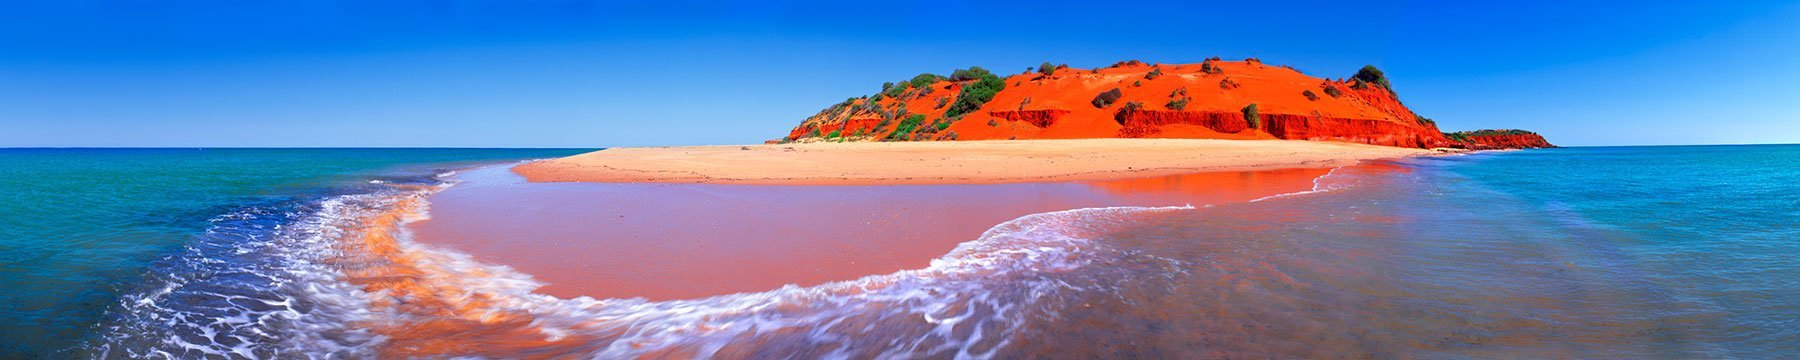 The red sand and blue water of Cape Peron in mid-morning, WA, Australia.